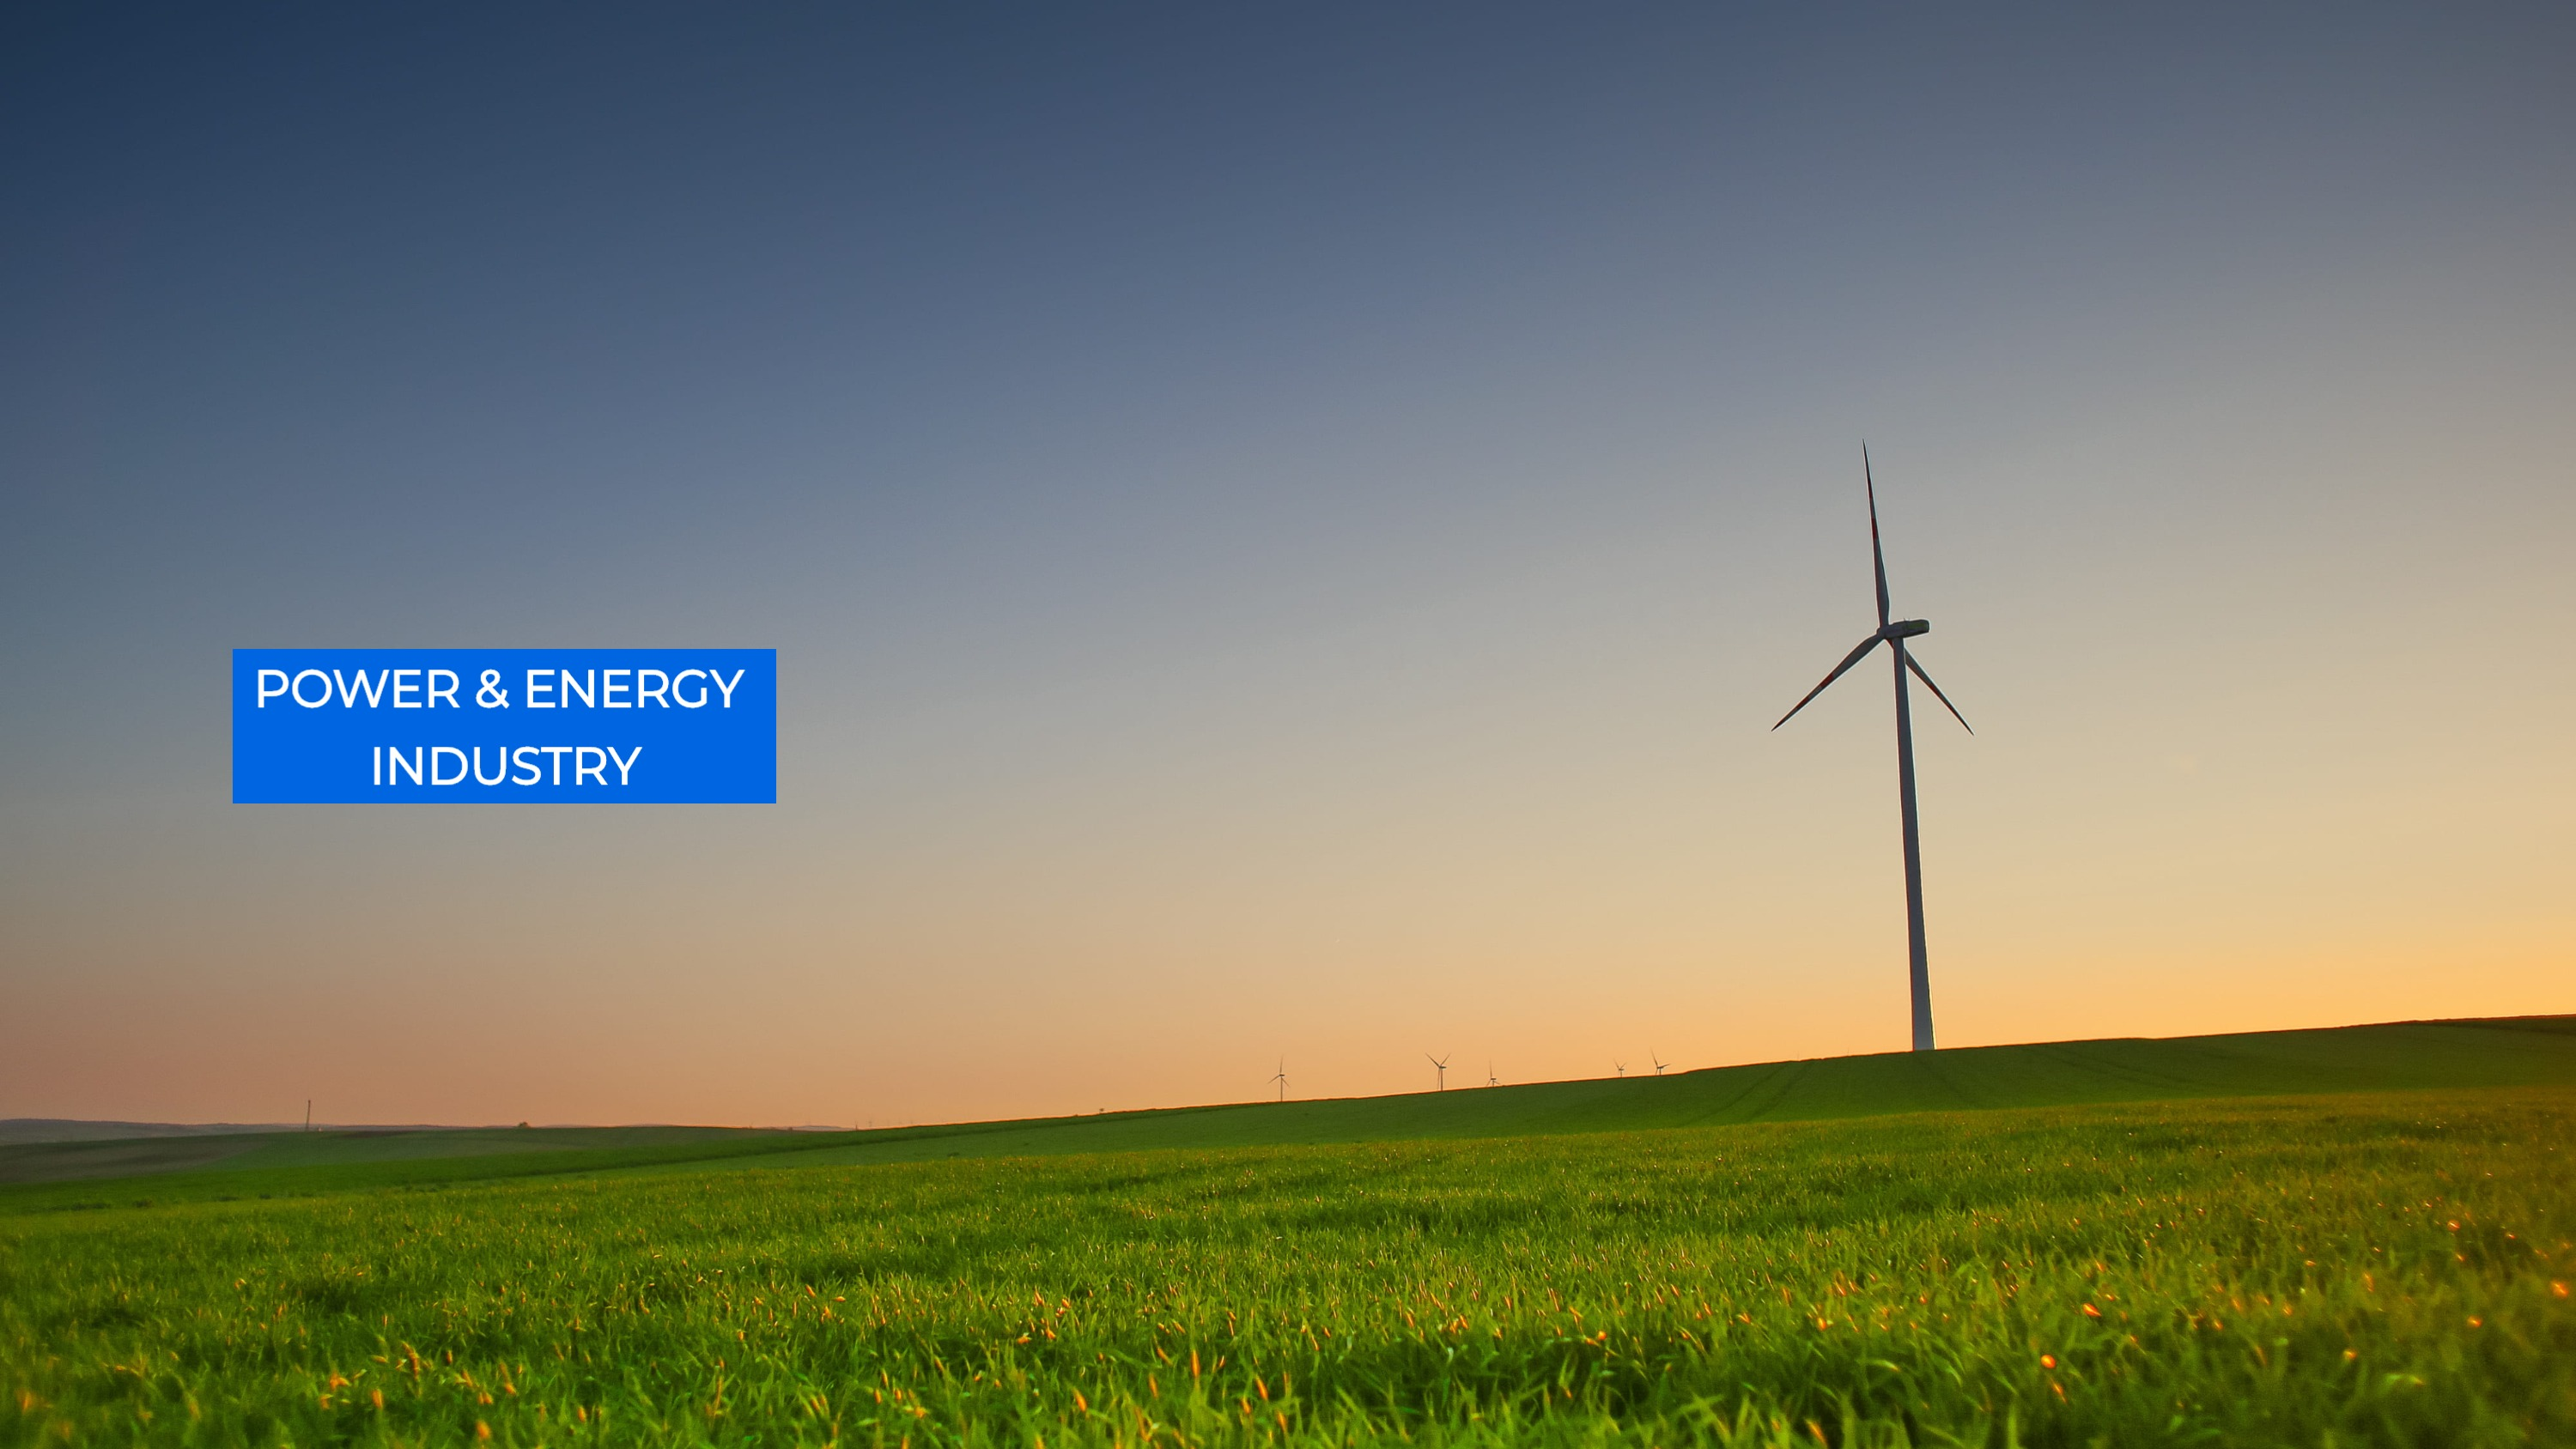 Power & Energy Industry - Windmill, Solar, Geothermal, Nuclear, Thermal - Conversion of energy from